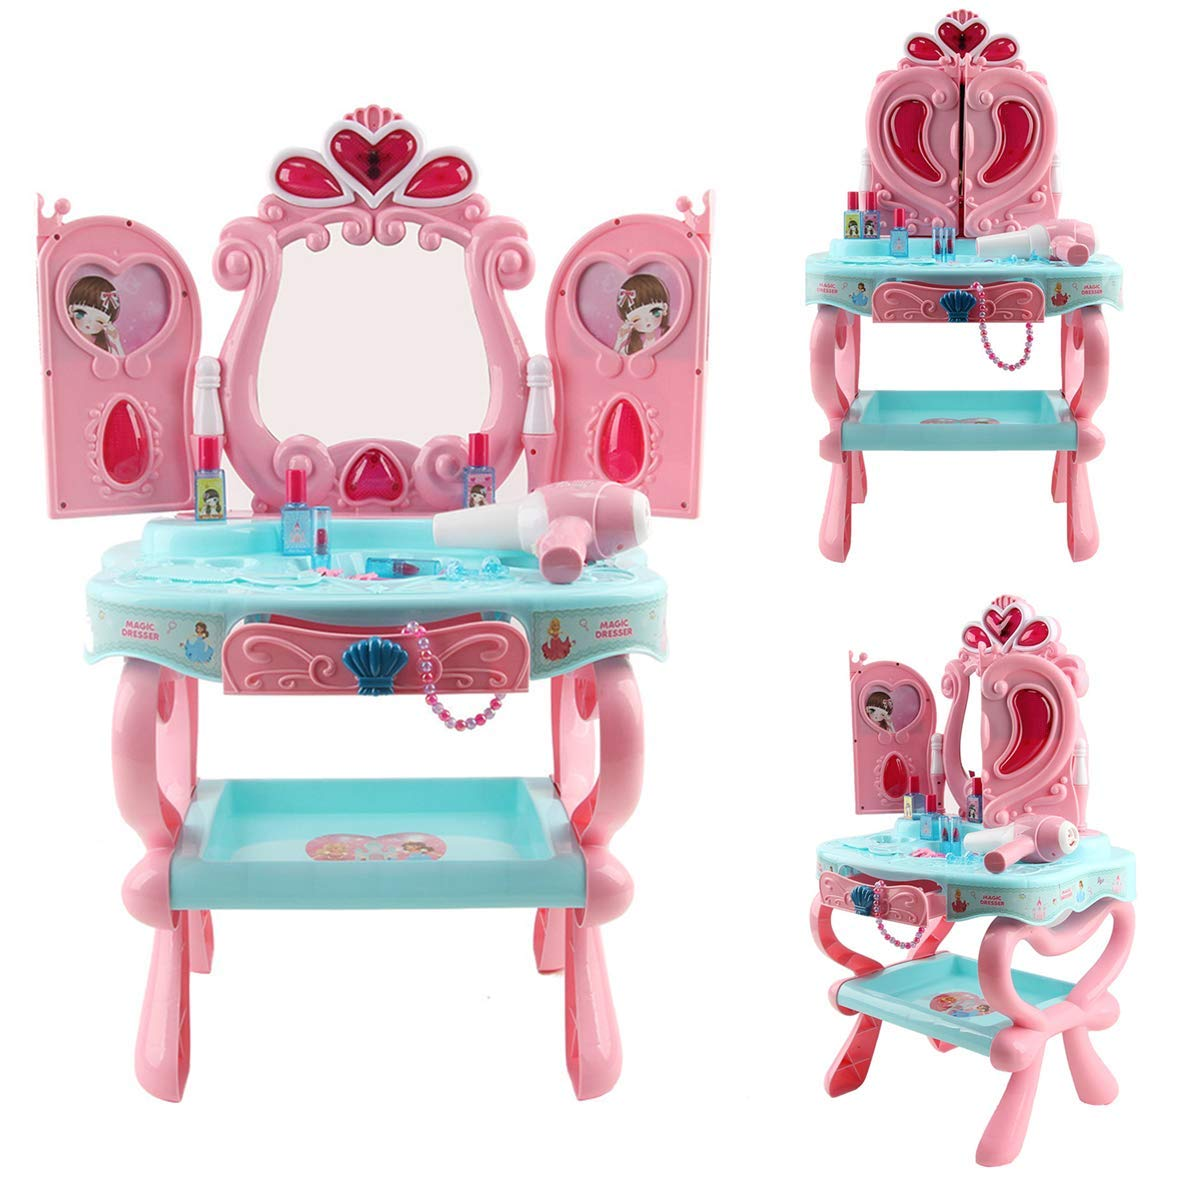 Toy Vanity Table, lesgos Makeup Dressing Table Toy Playset, Pretend Play Makeup Kit with Comb, Hair Bands, Hair Dryer,Toy Vanity, Gift for 1-4 Years Old Girls- Ship from US!! Pink